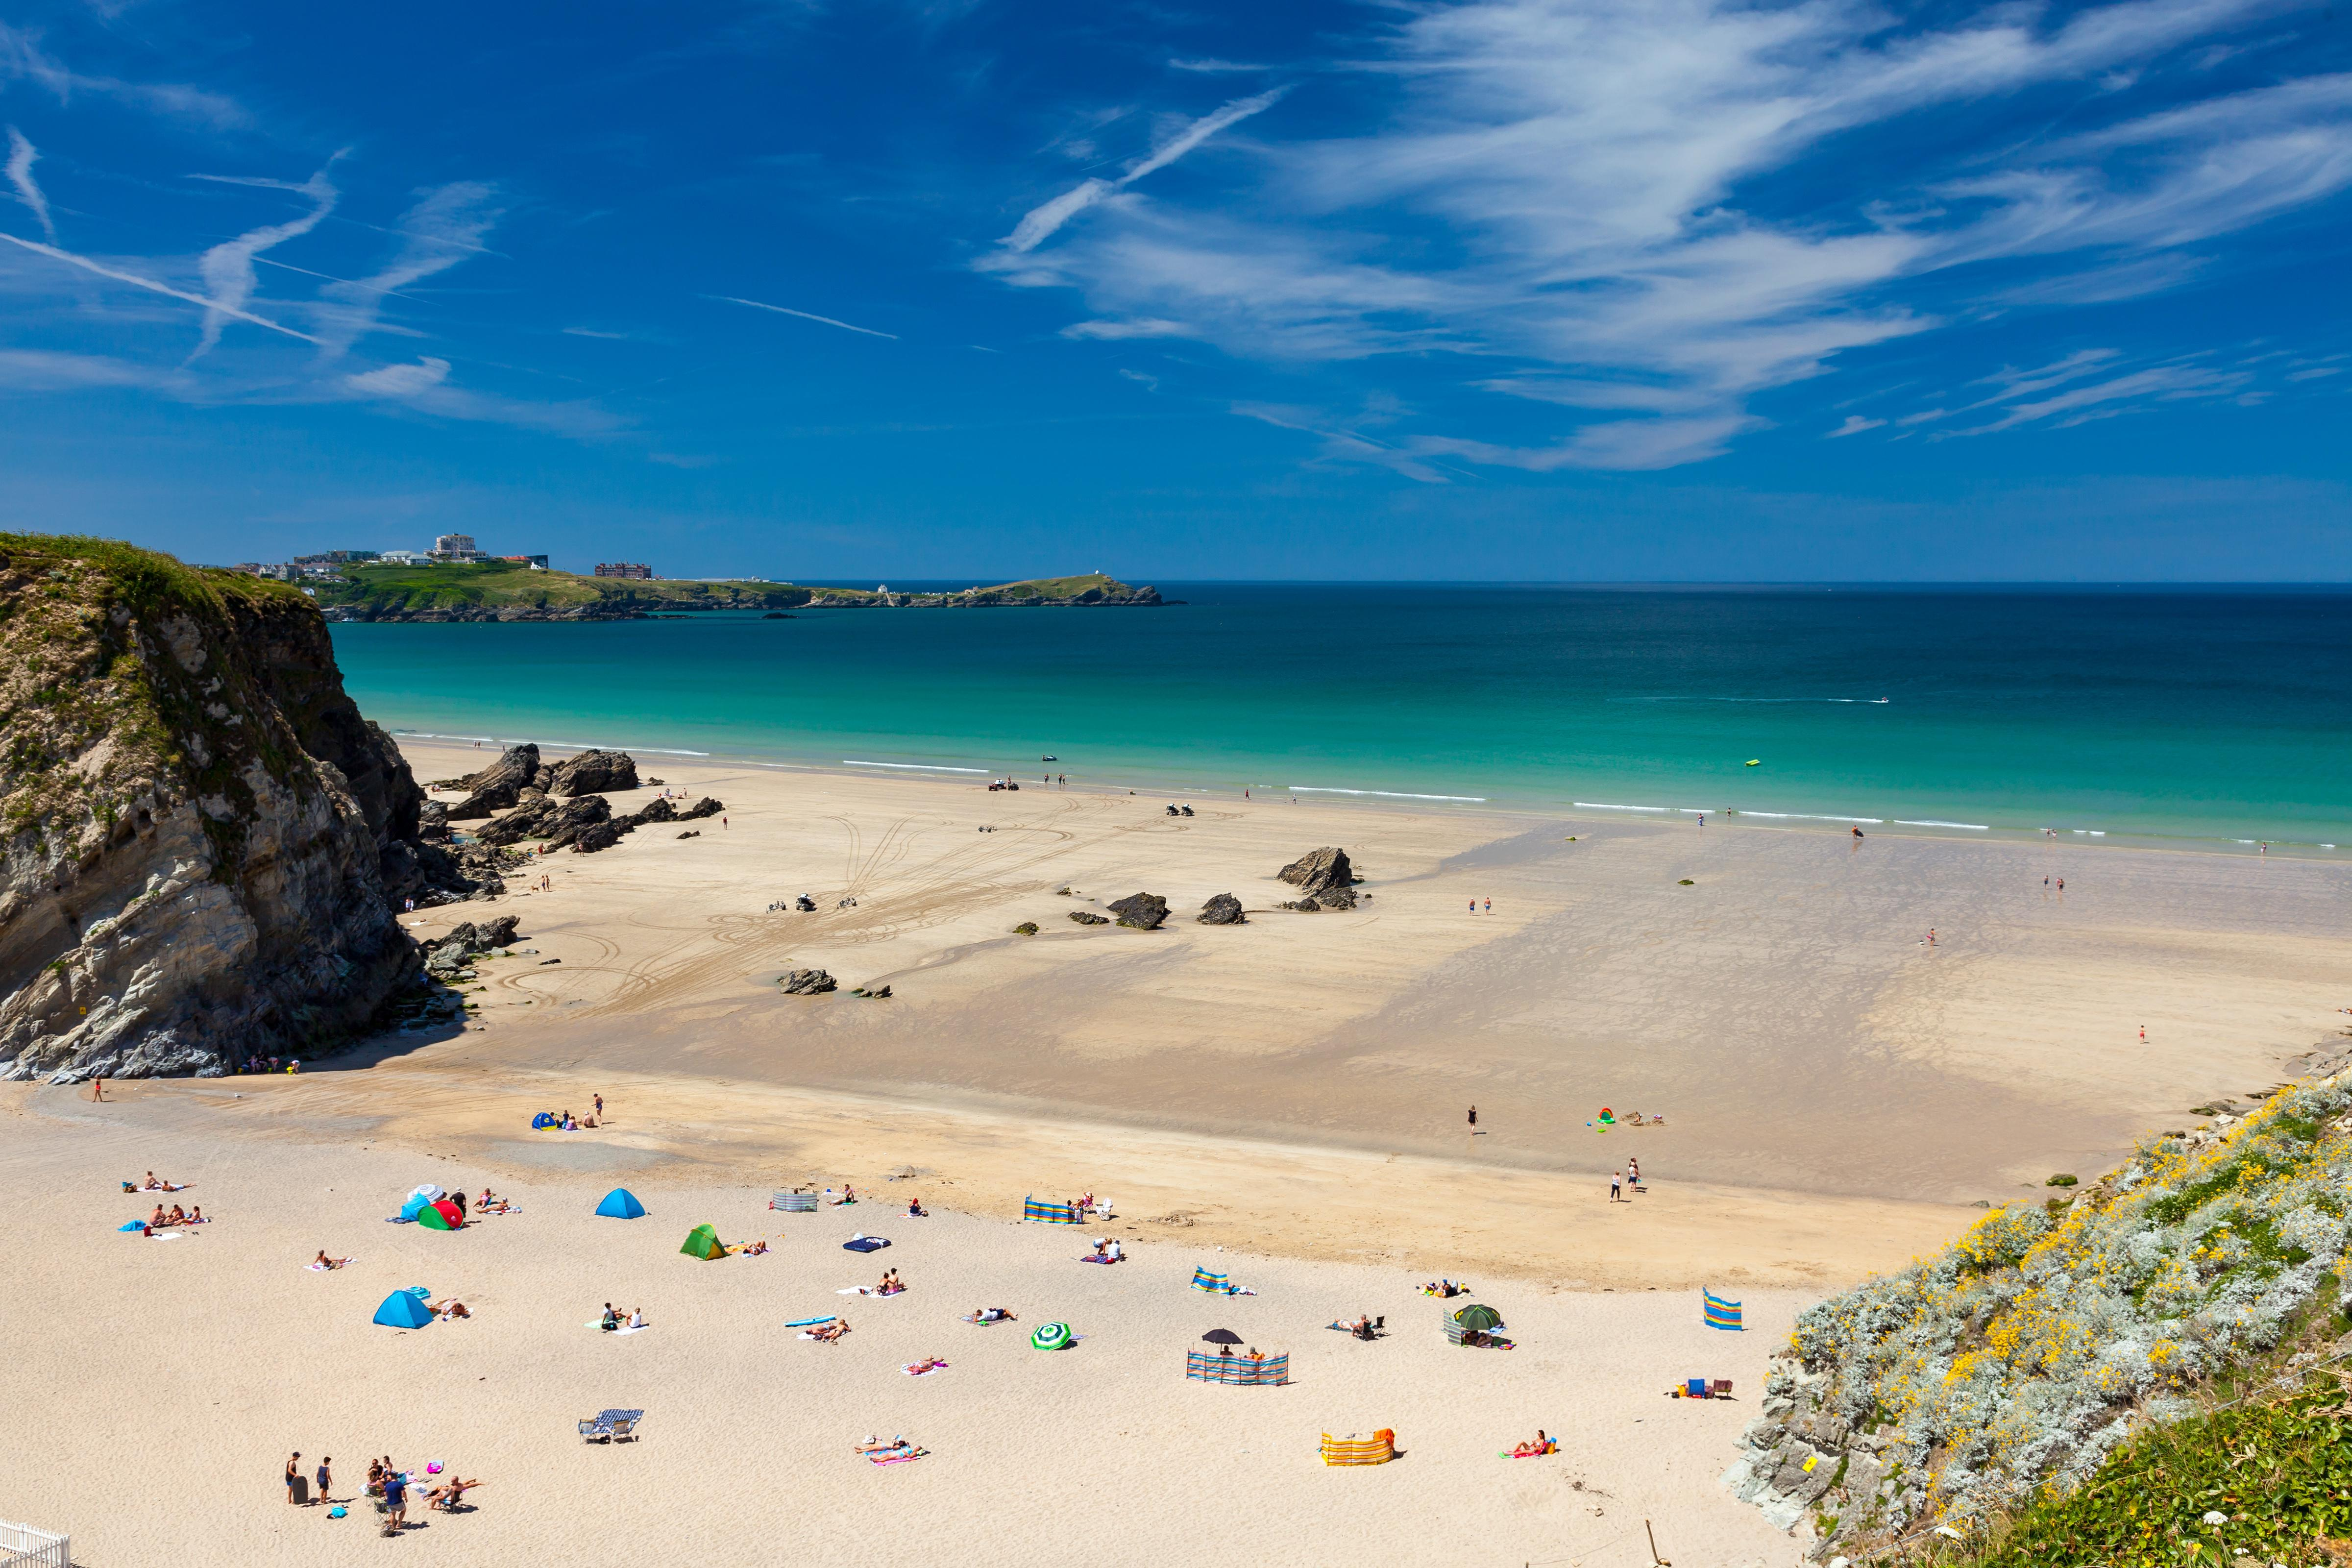 'There's a rock on this beach!' and other awful tourist complaints